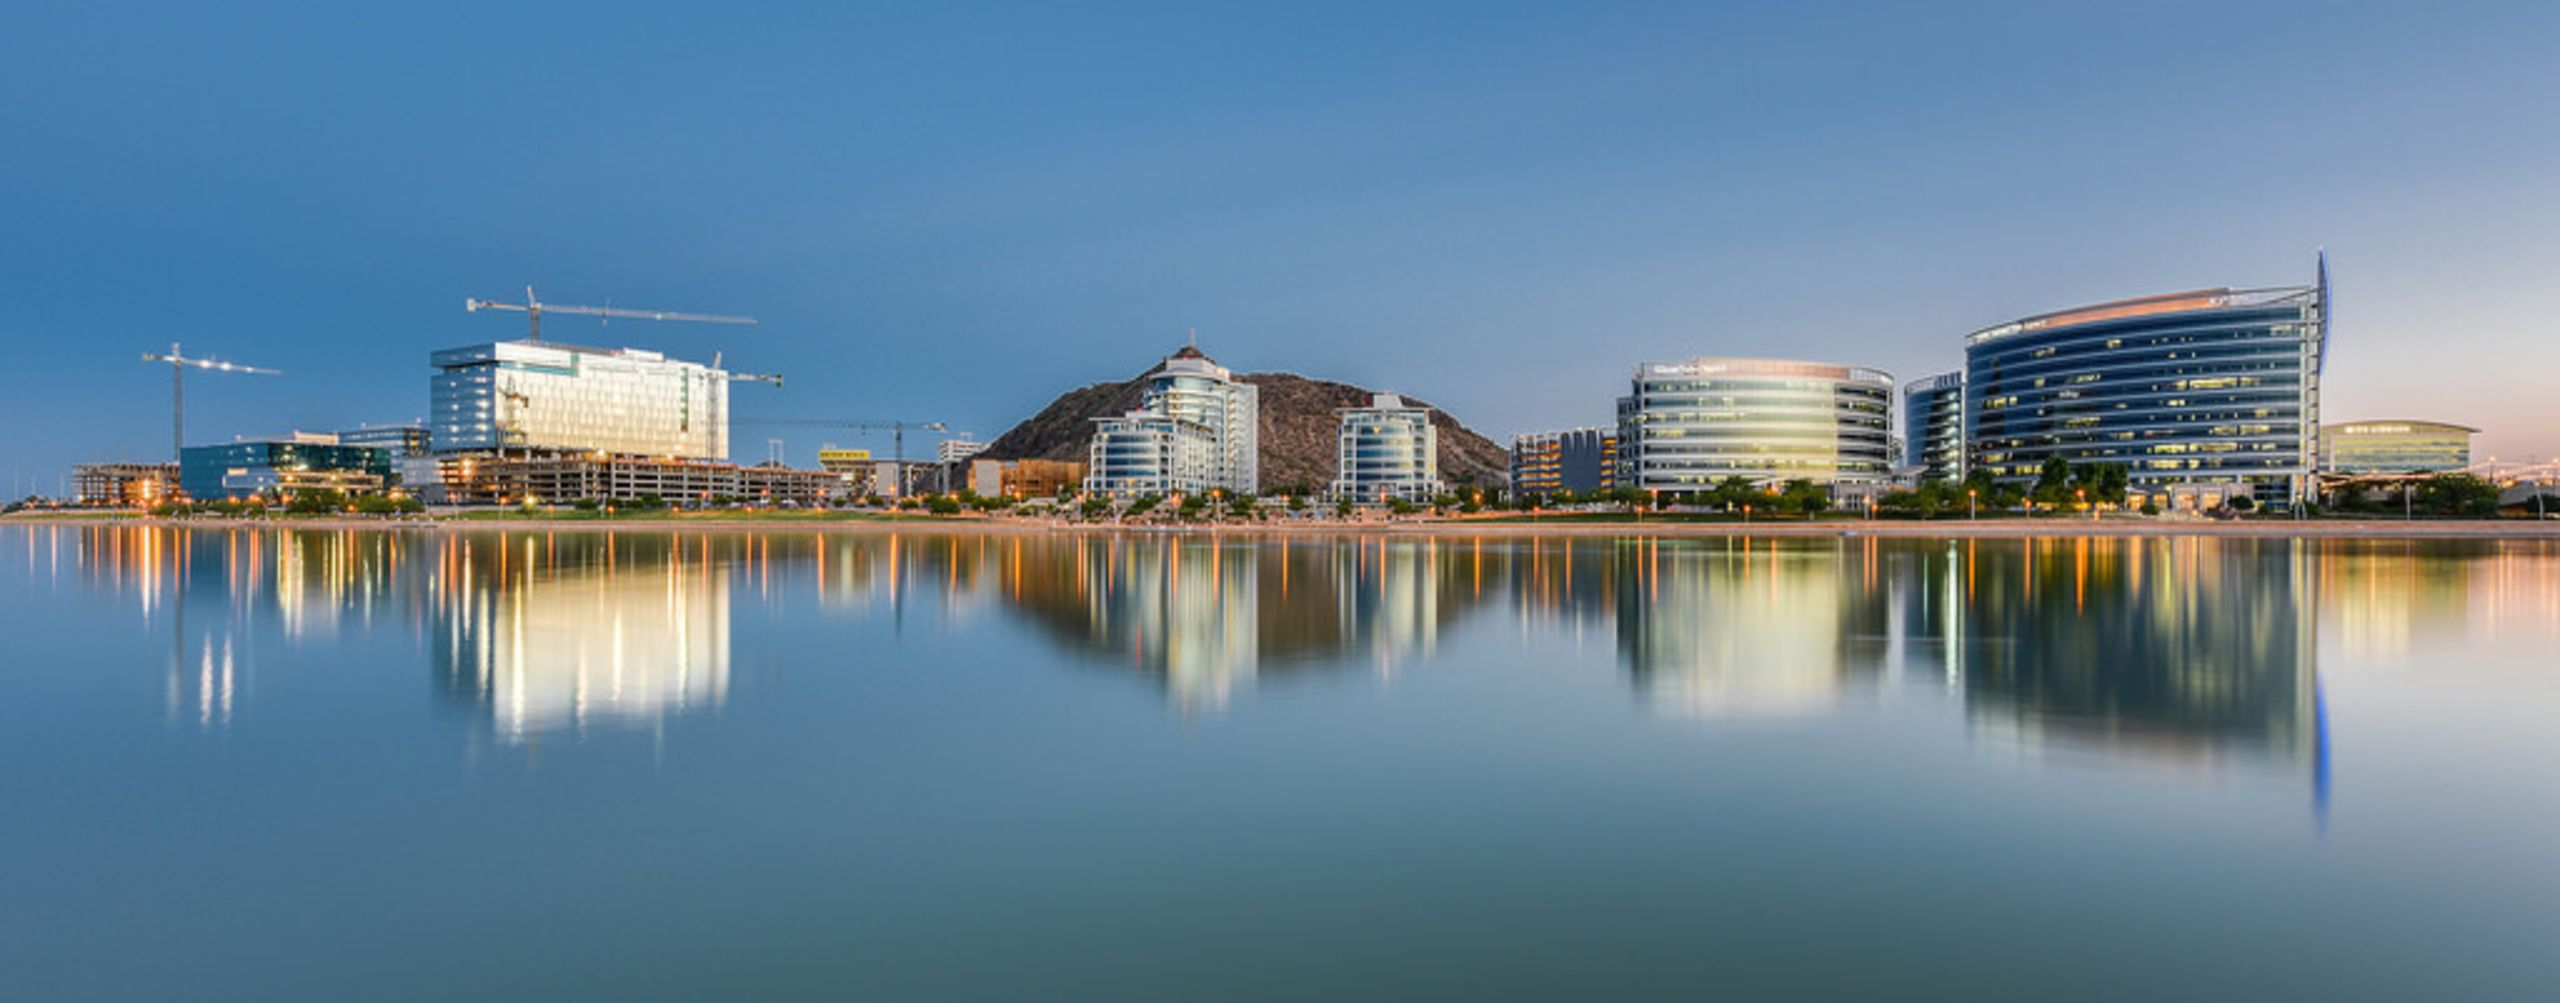 Tempe Town Lake and it's emerging skyline